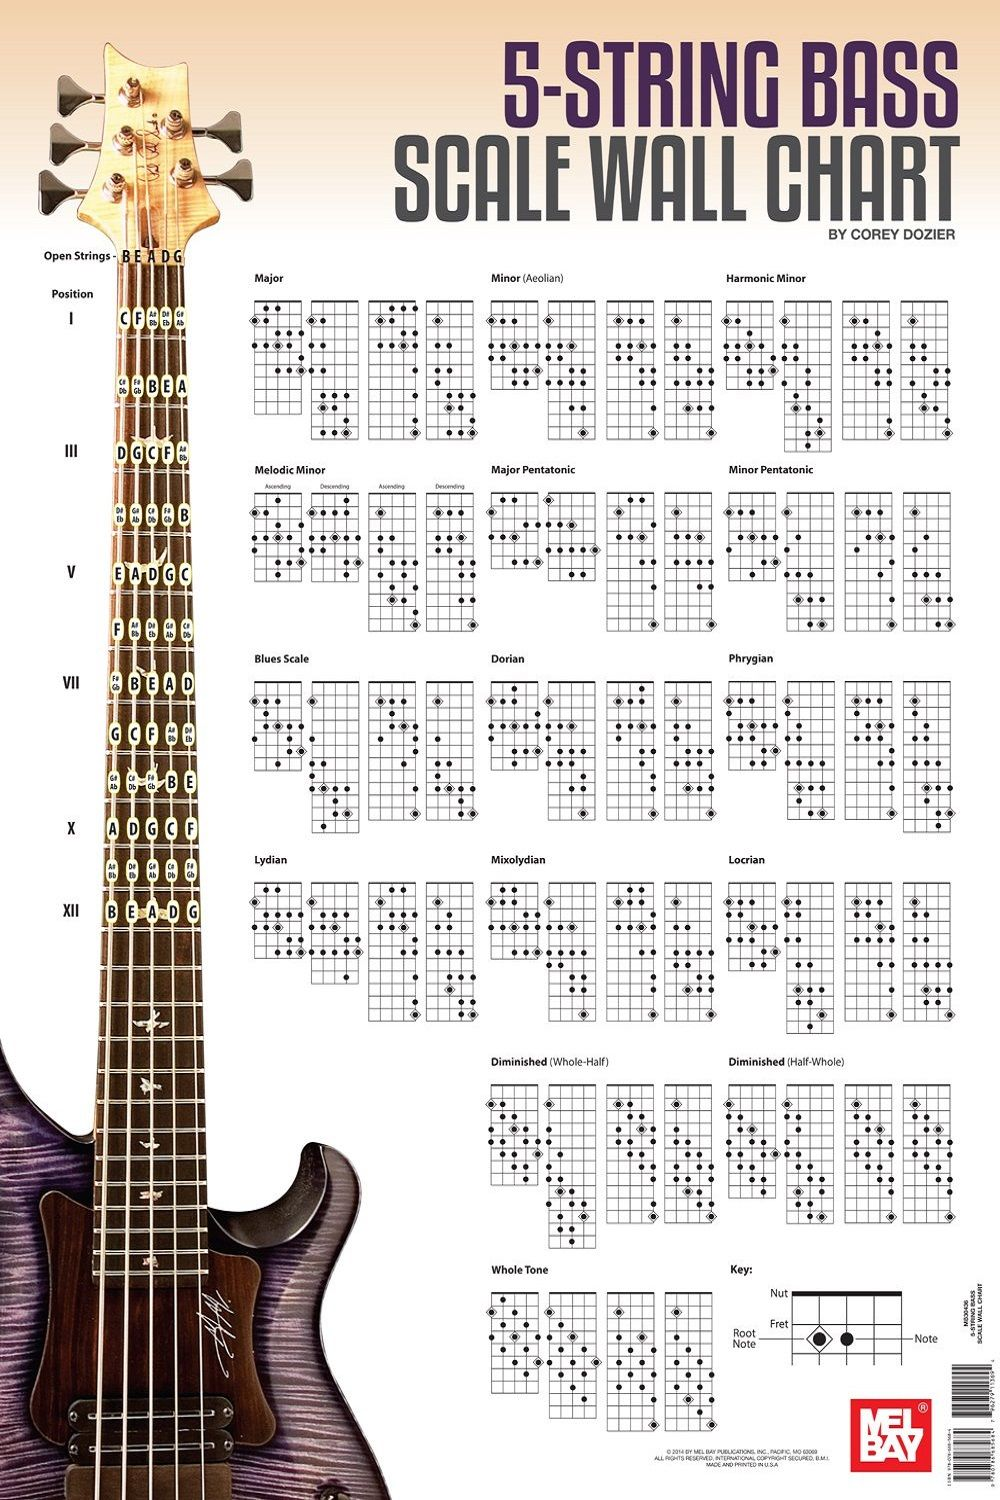 The 25+ best Bass guitar scales ideas on Pinterest | Bass ... |Orchestra Bass Scale Chart